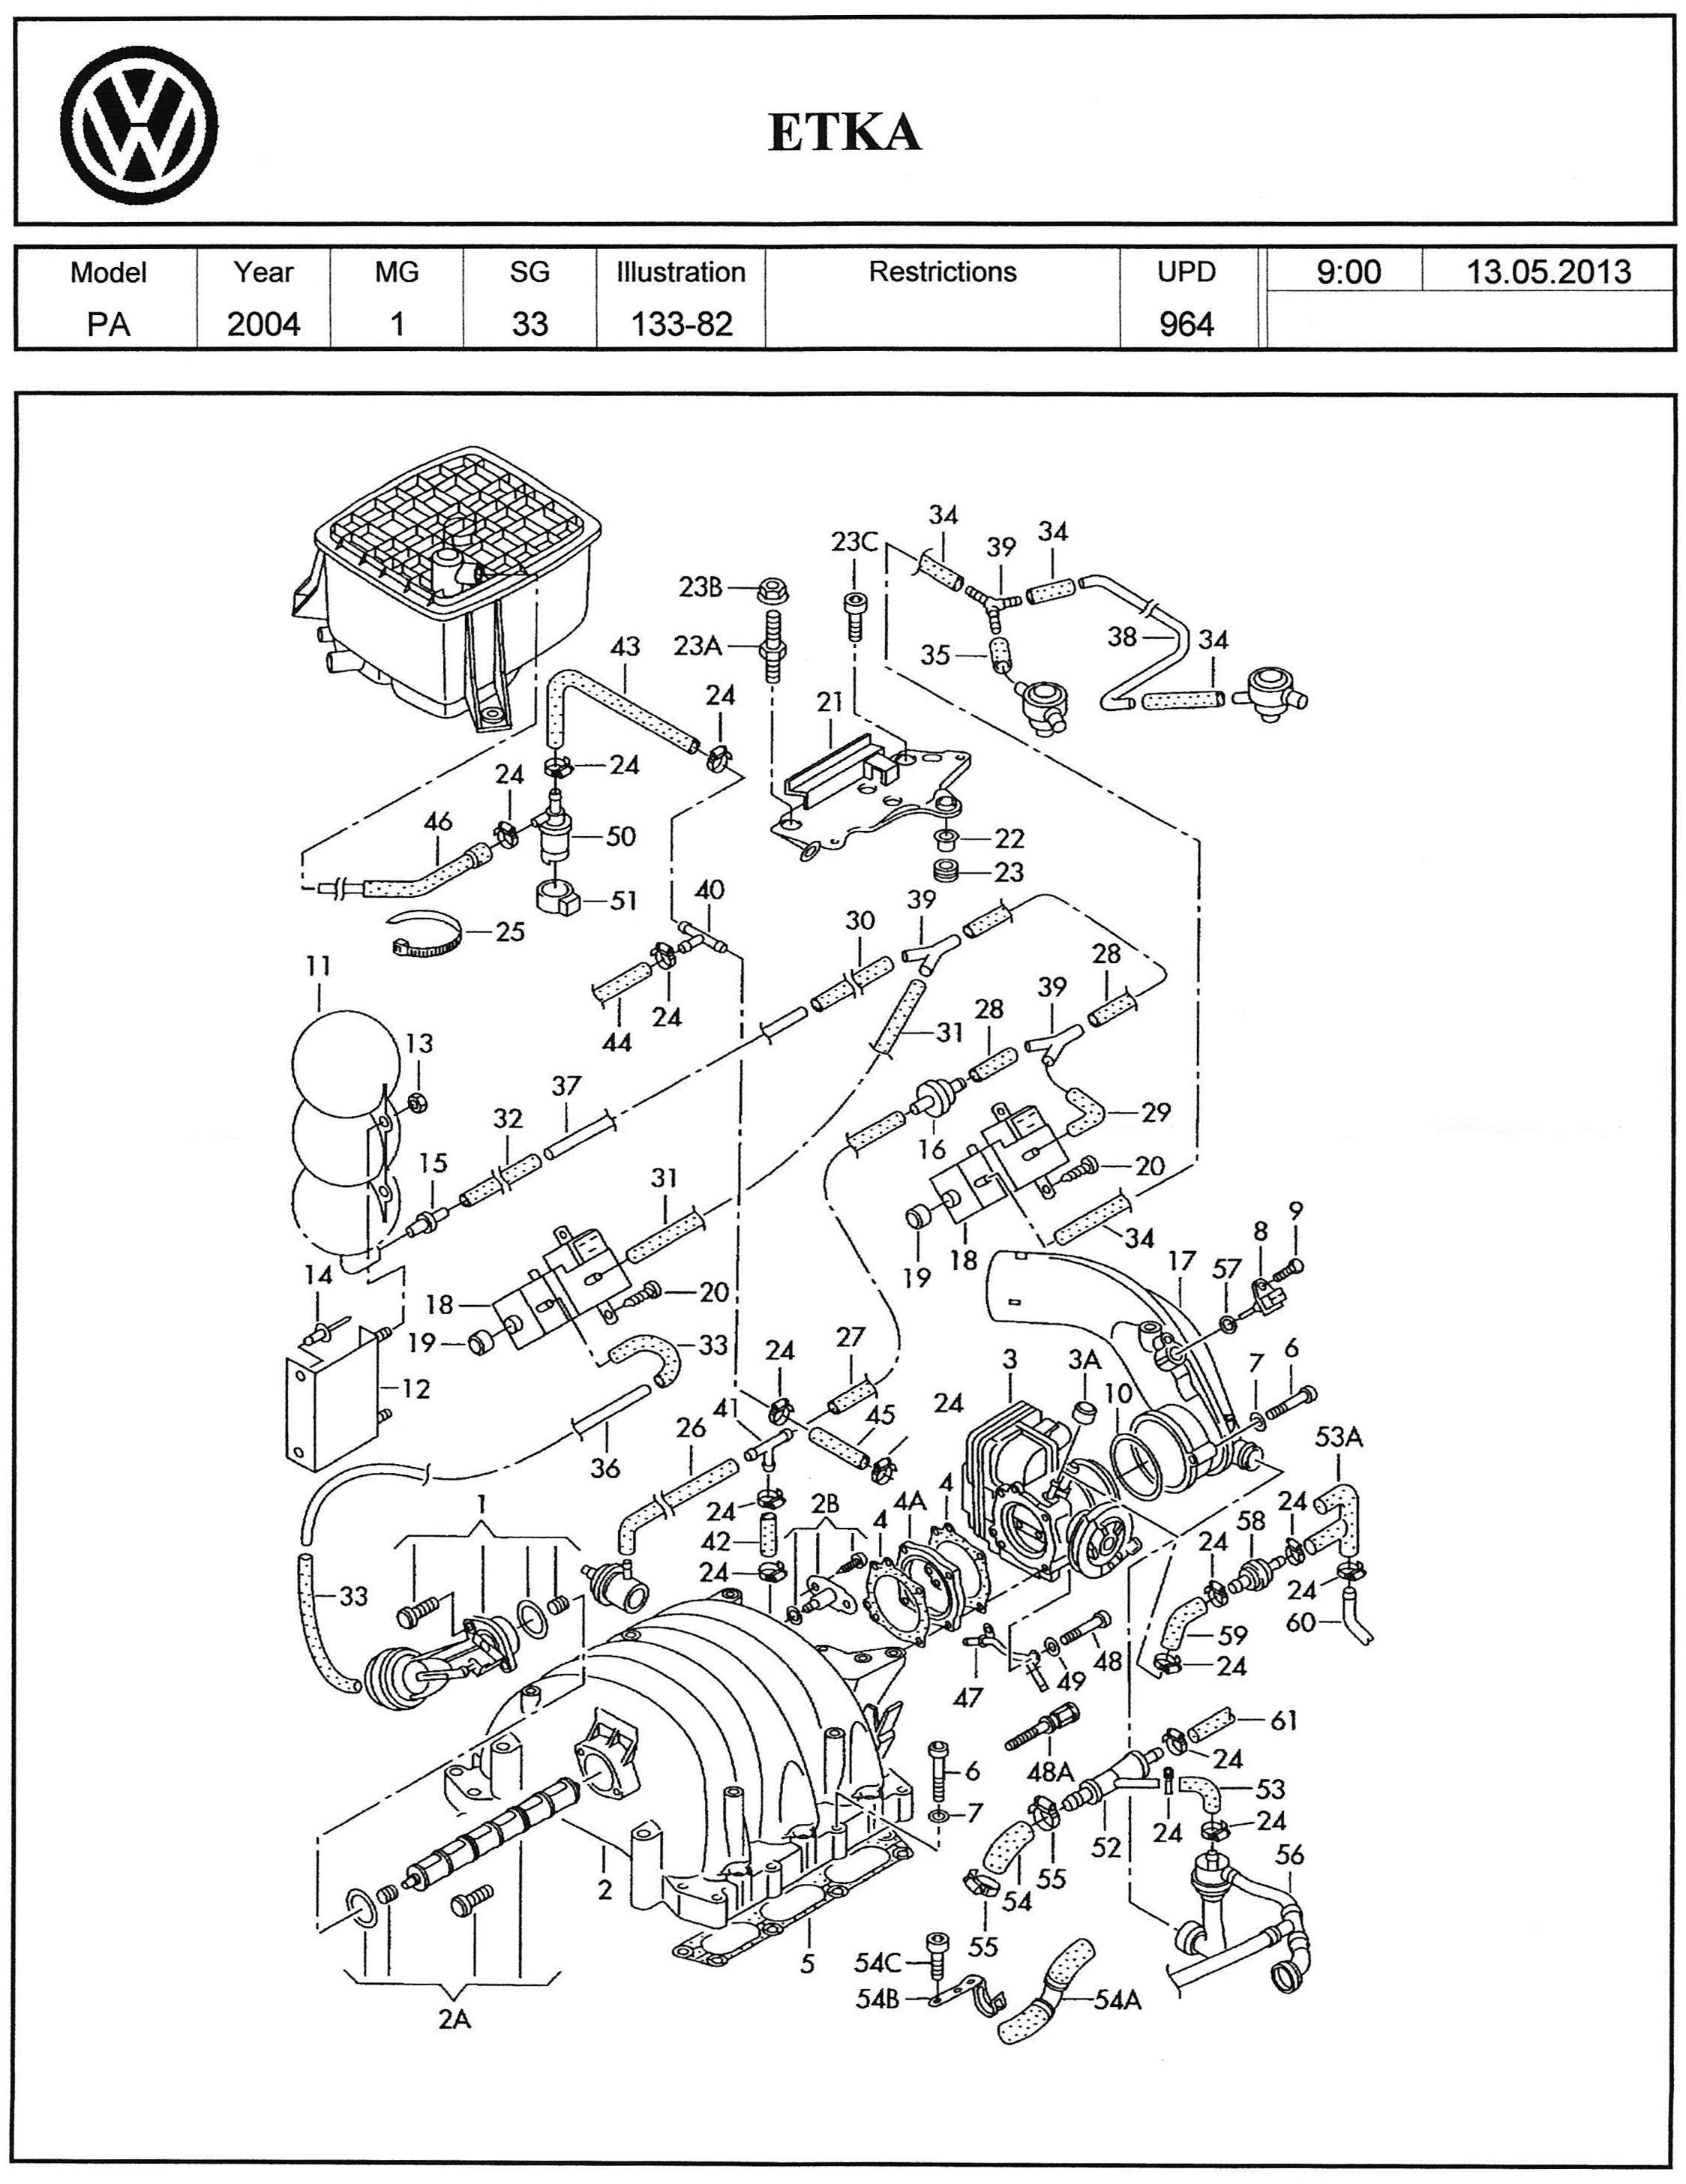 2002 vw passat vacuum hose diagram avital 4x03 remote start wiring index of world images parts